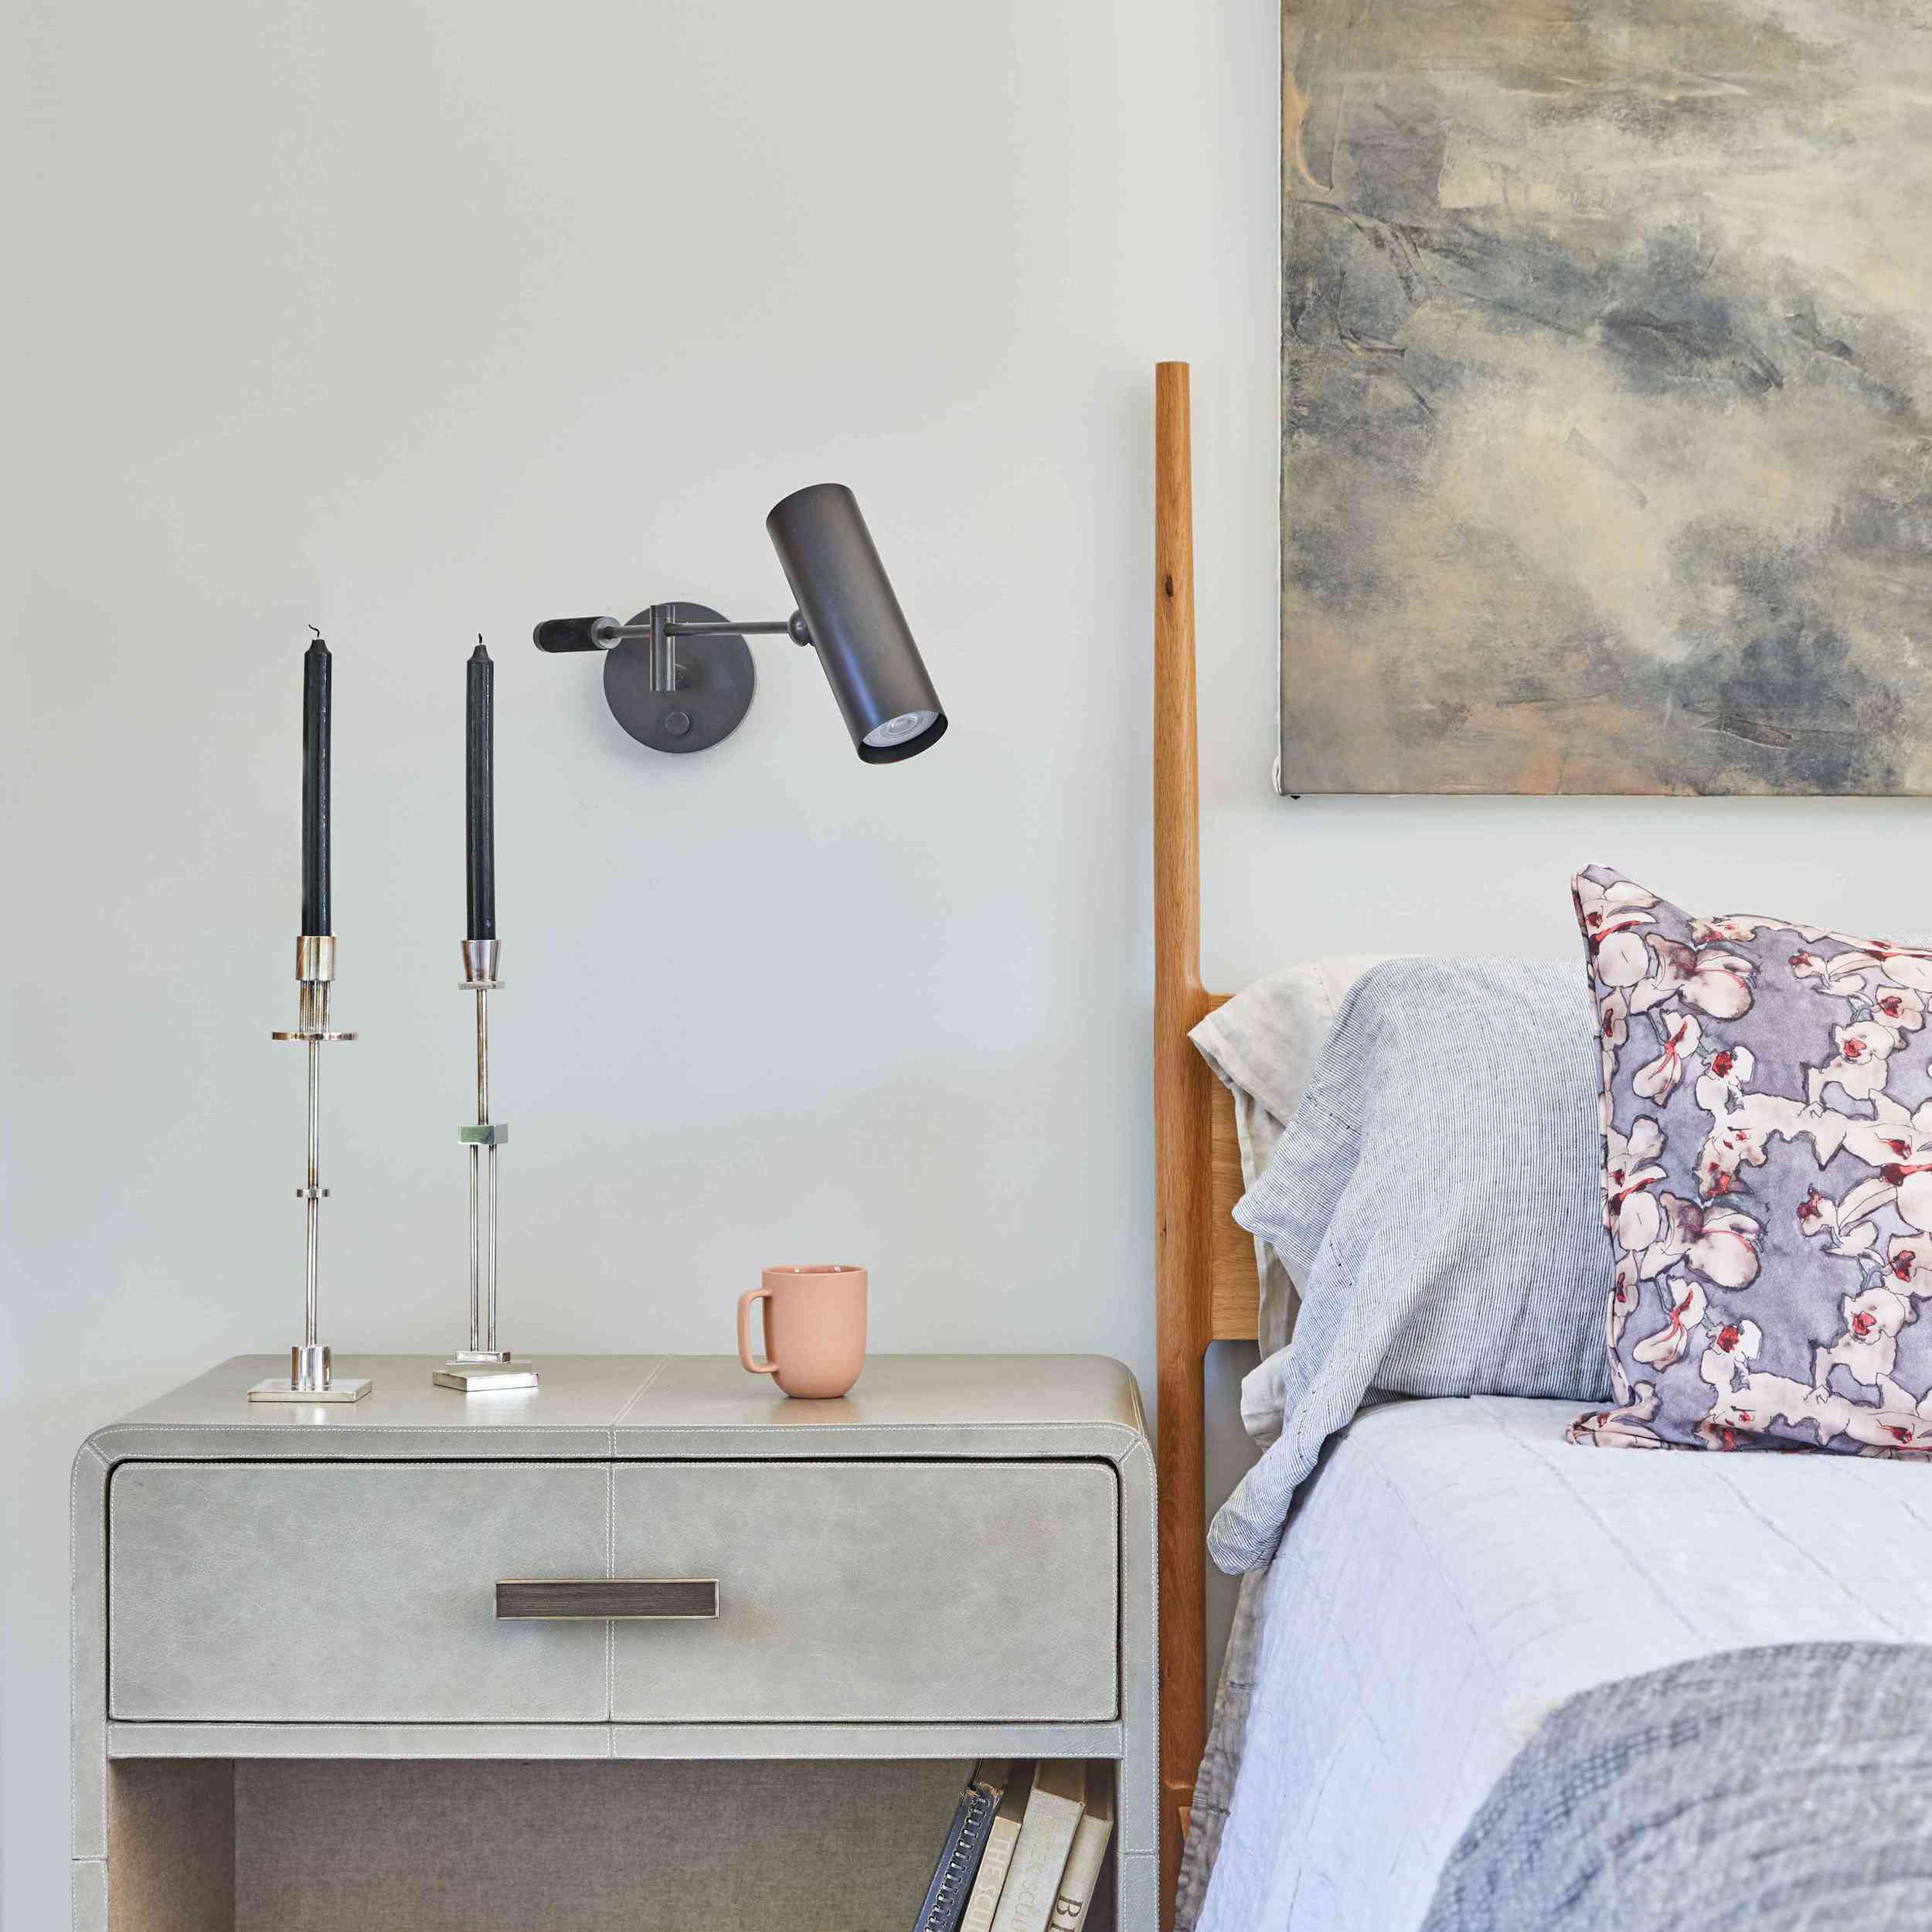 A bedroom with a sleek, industrial sconce